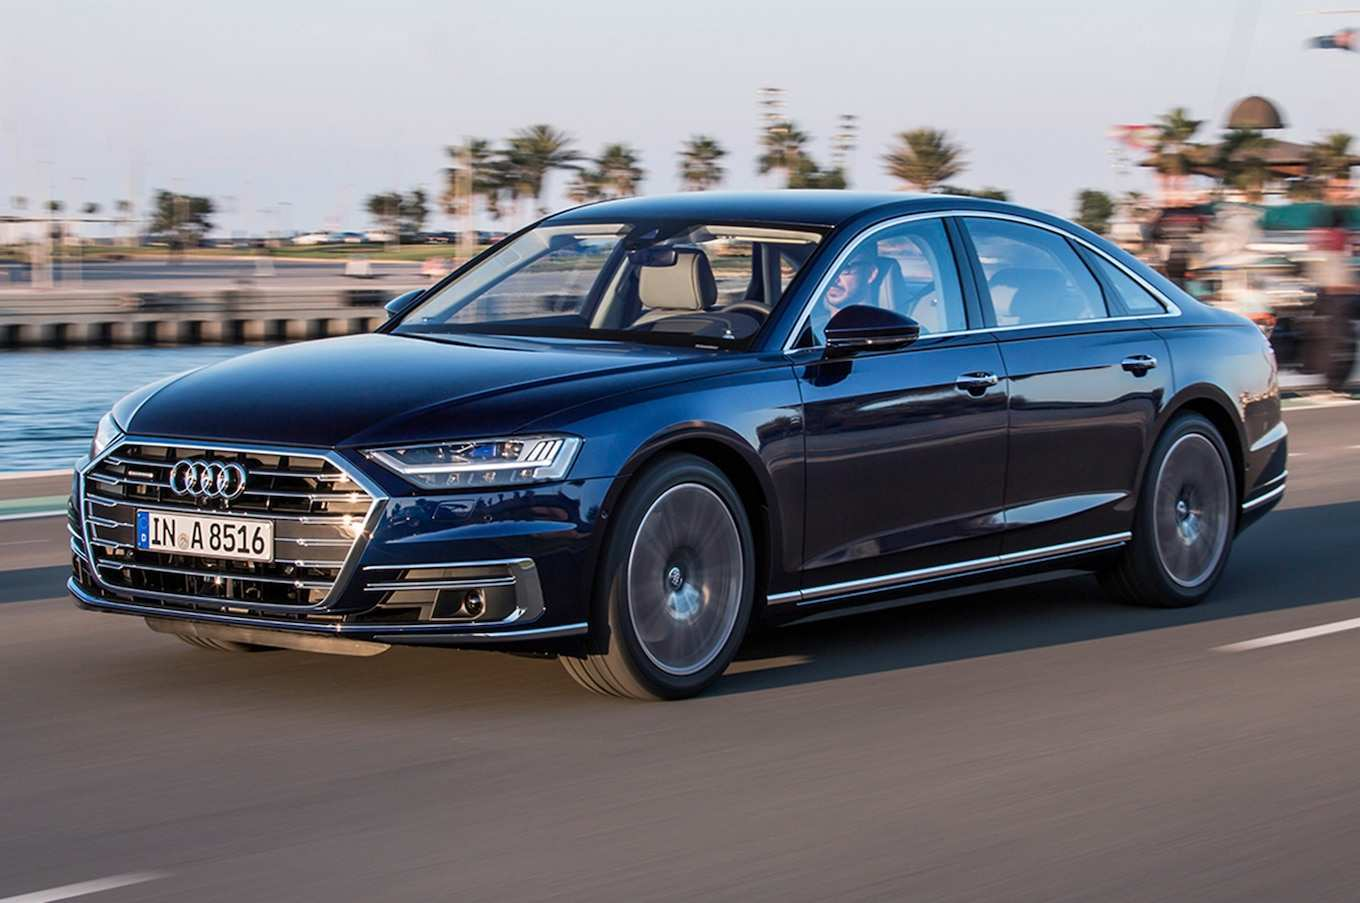 95 New 2019 Audi A8 L Configurations for 2019 Audi A8 L